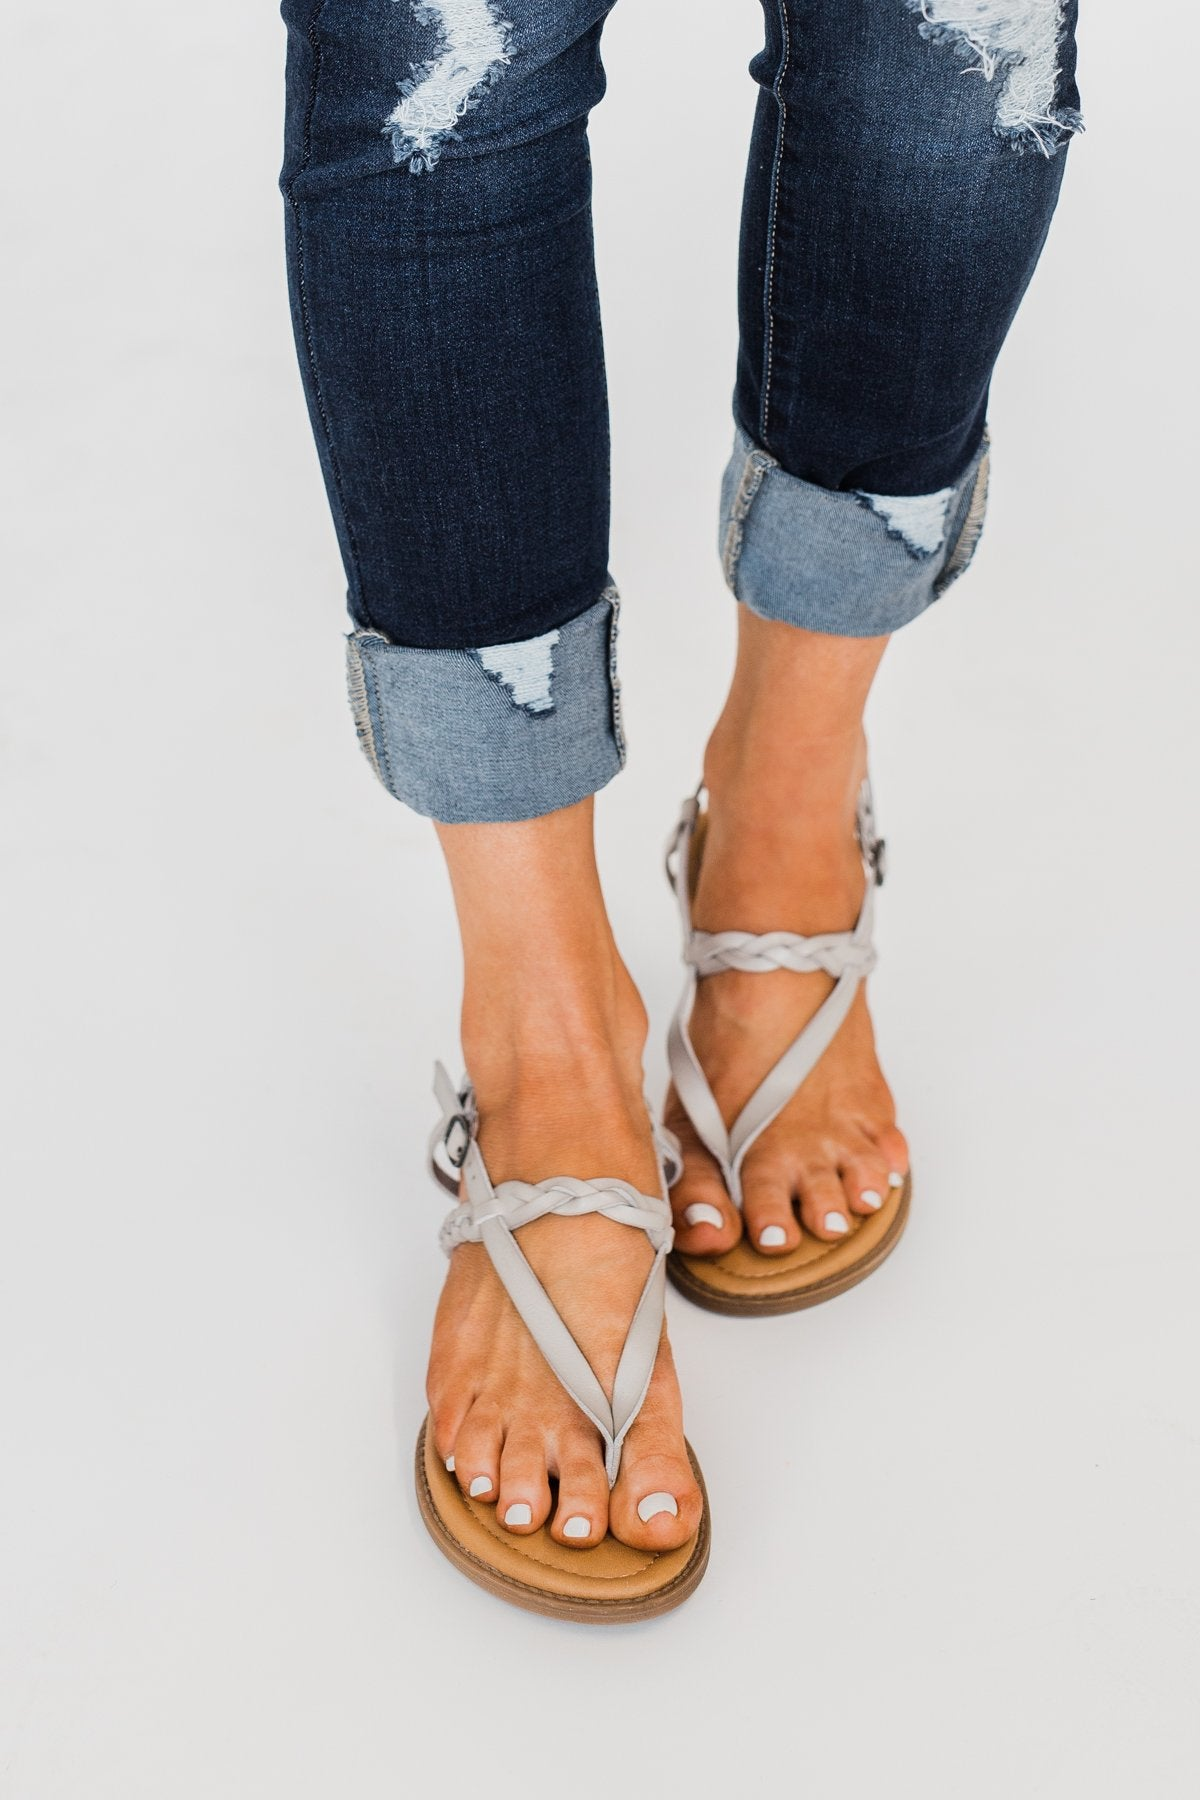 Blowfish Berg-B Sandals- Stone Grey